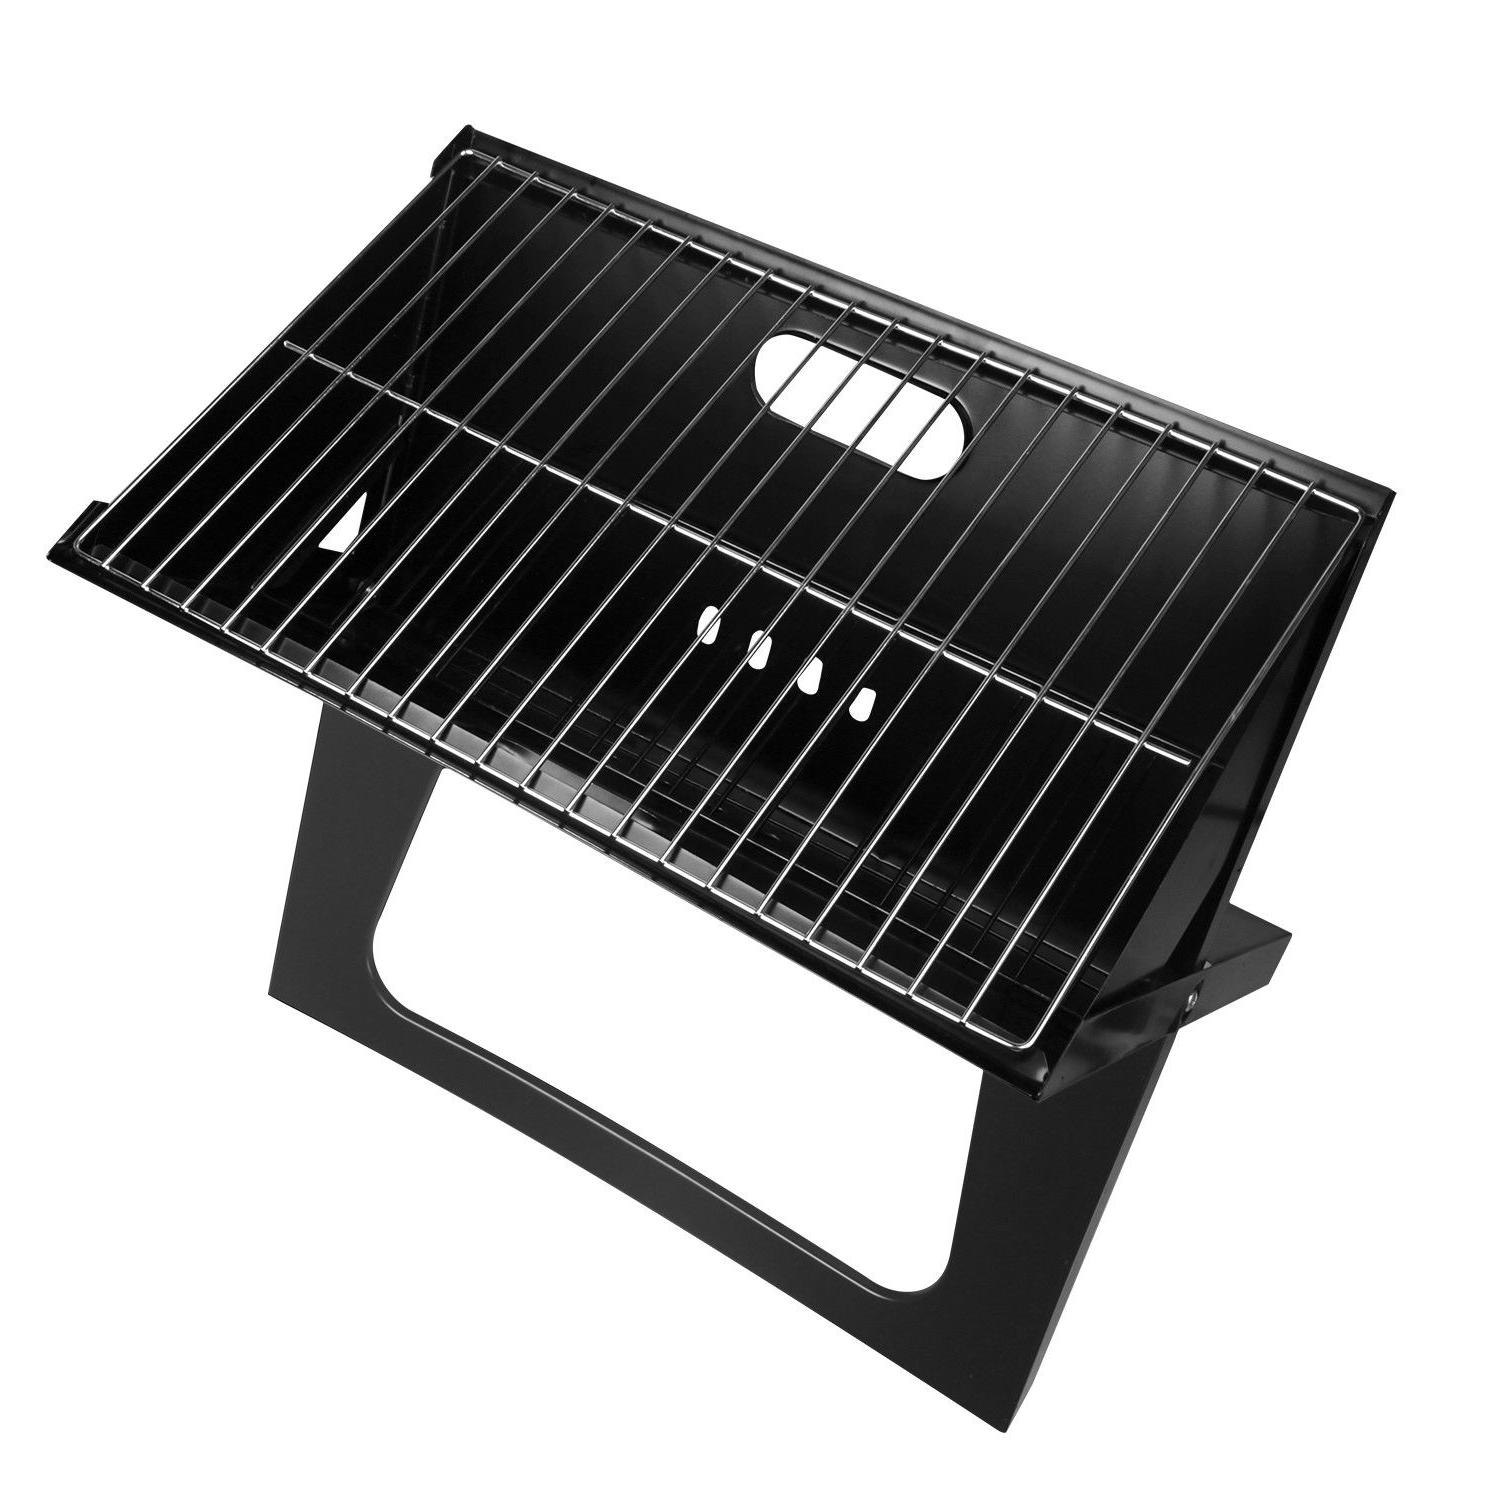 Portable Compact Charcoal BBQ Cooker